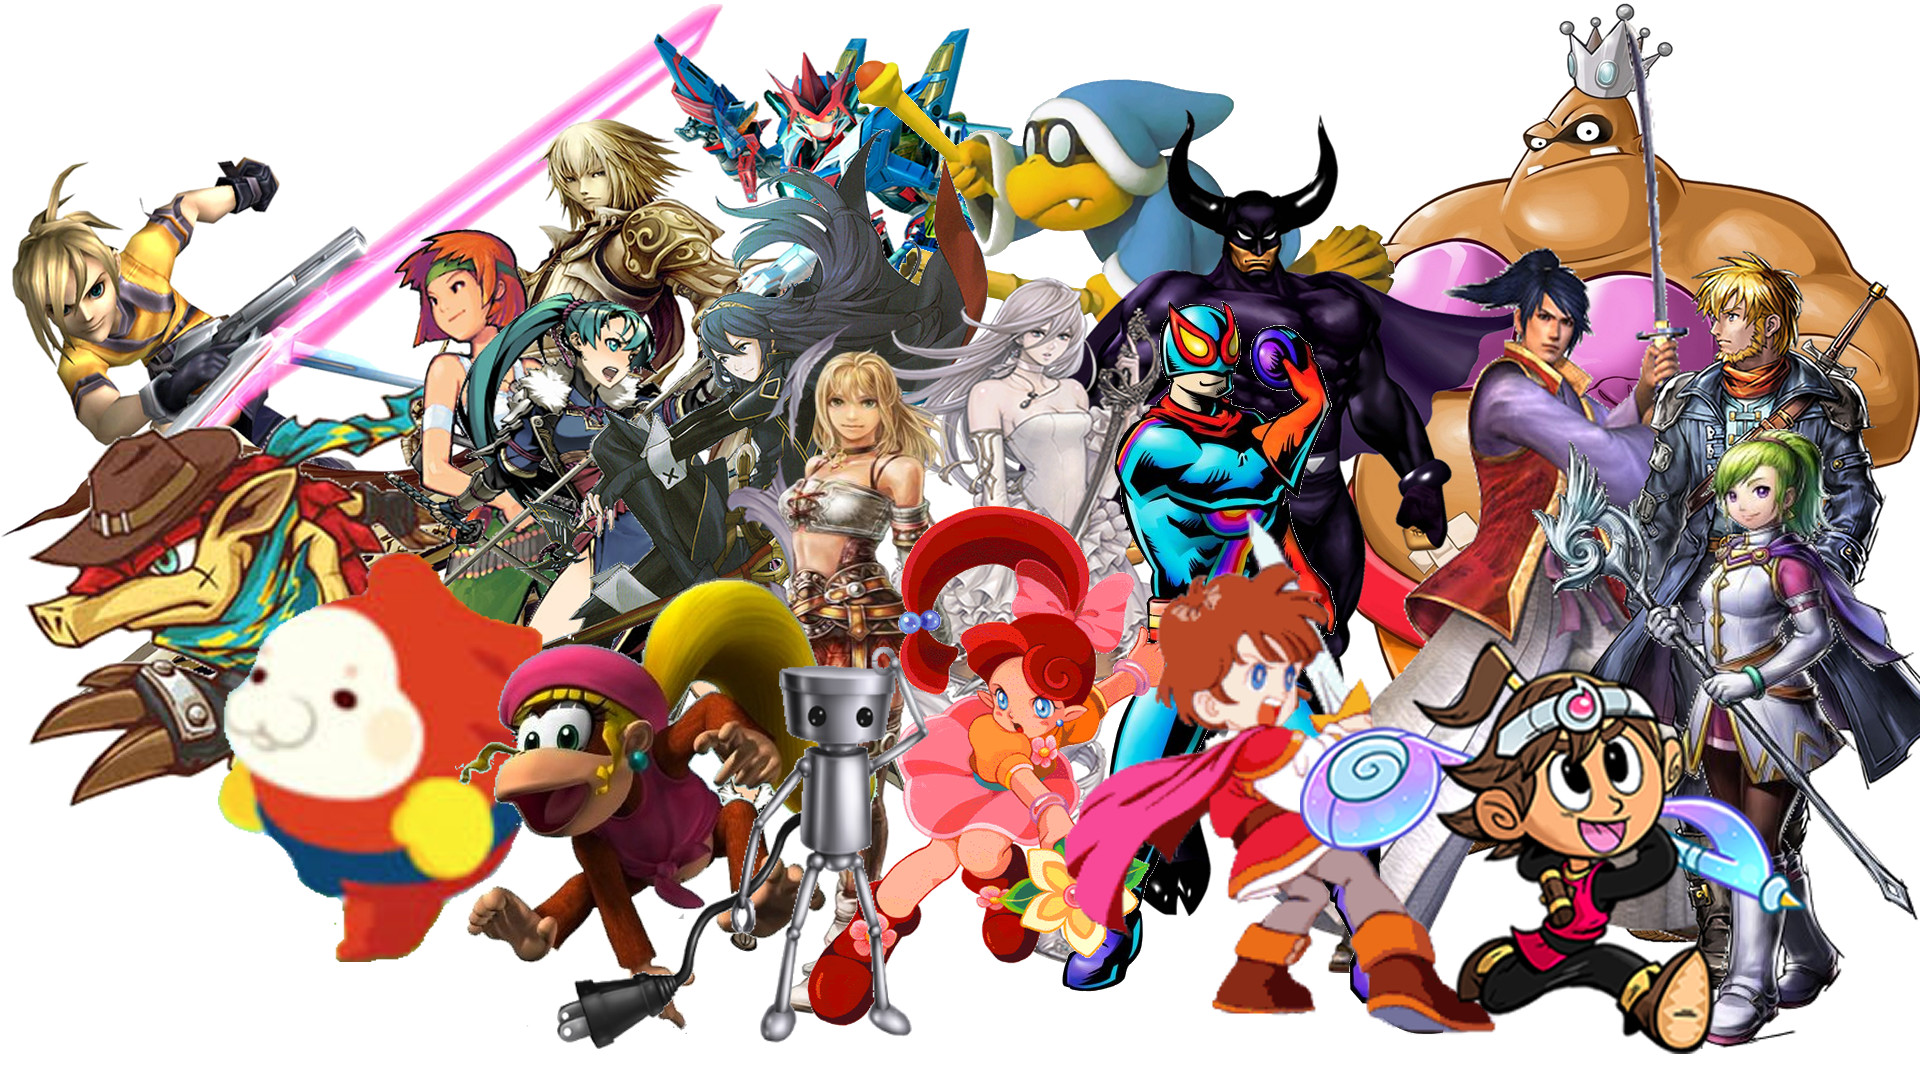 For Nintendo 3ds And Wii U HD Wallpapers .